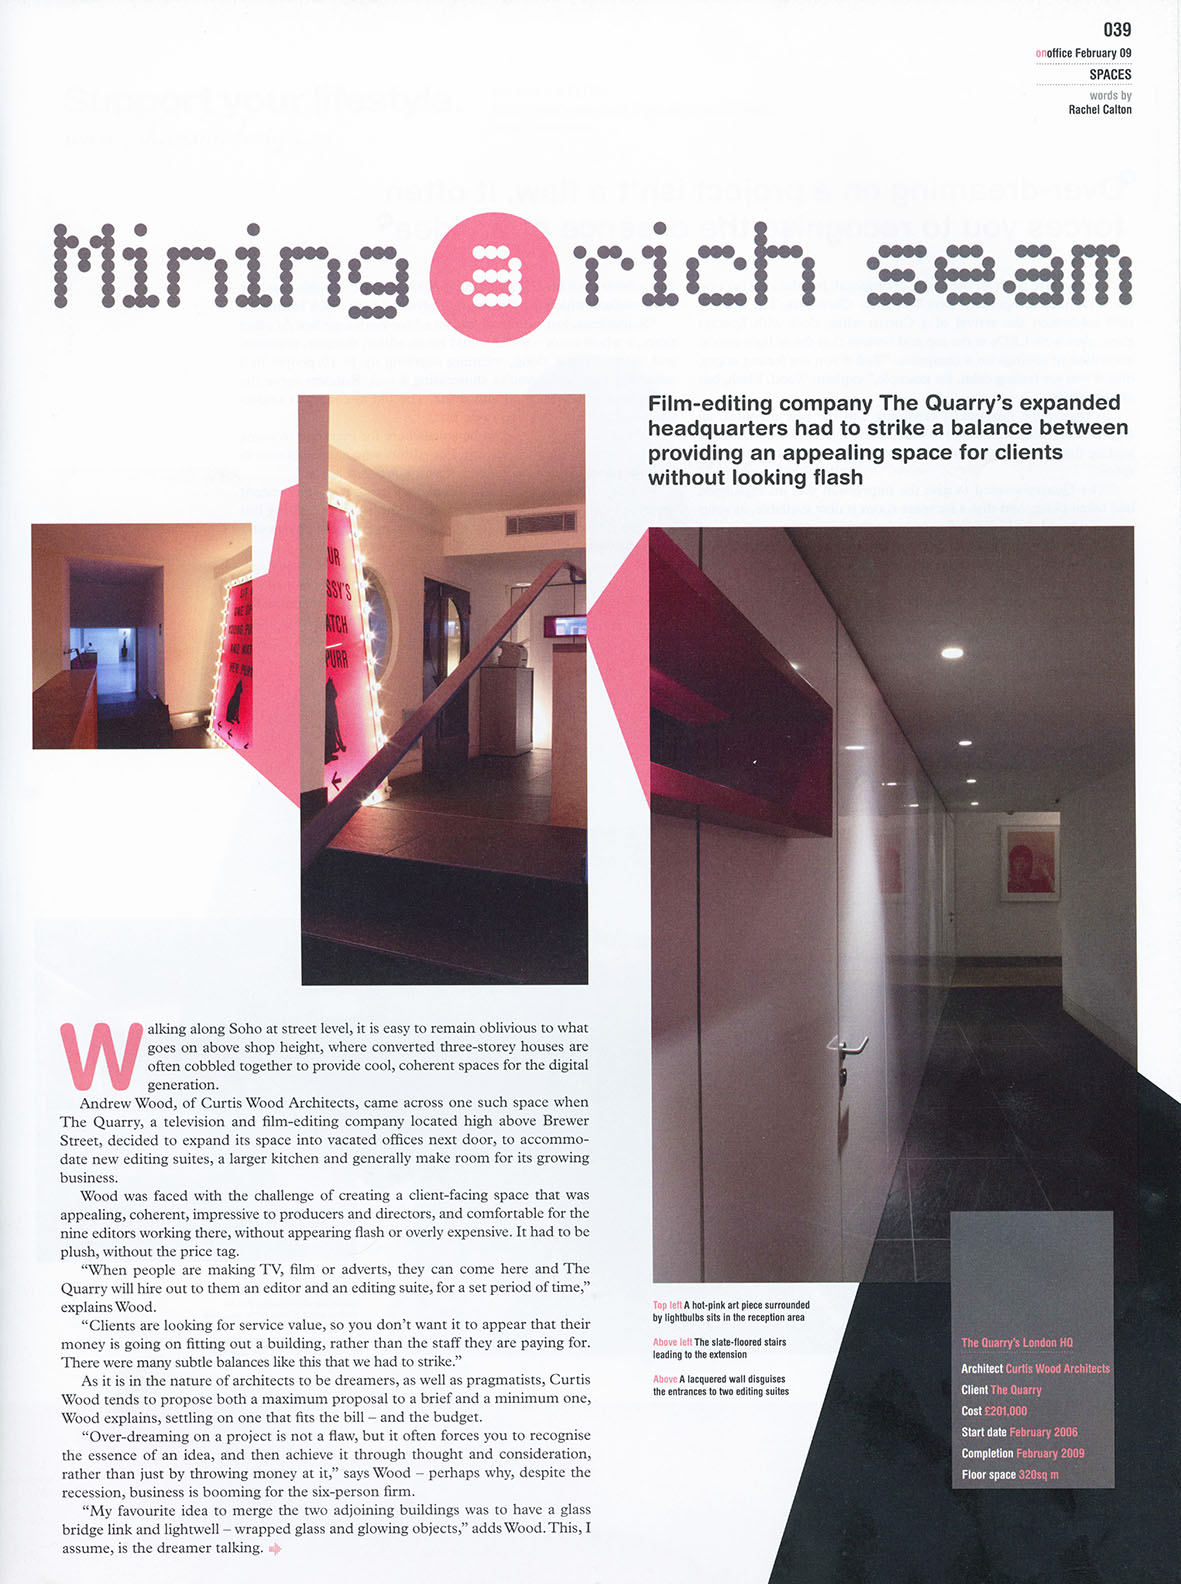 On Office magazine 2009